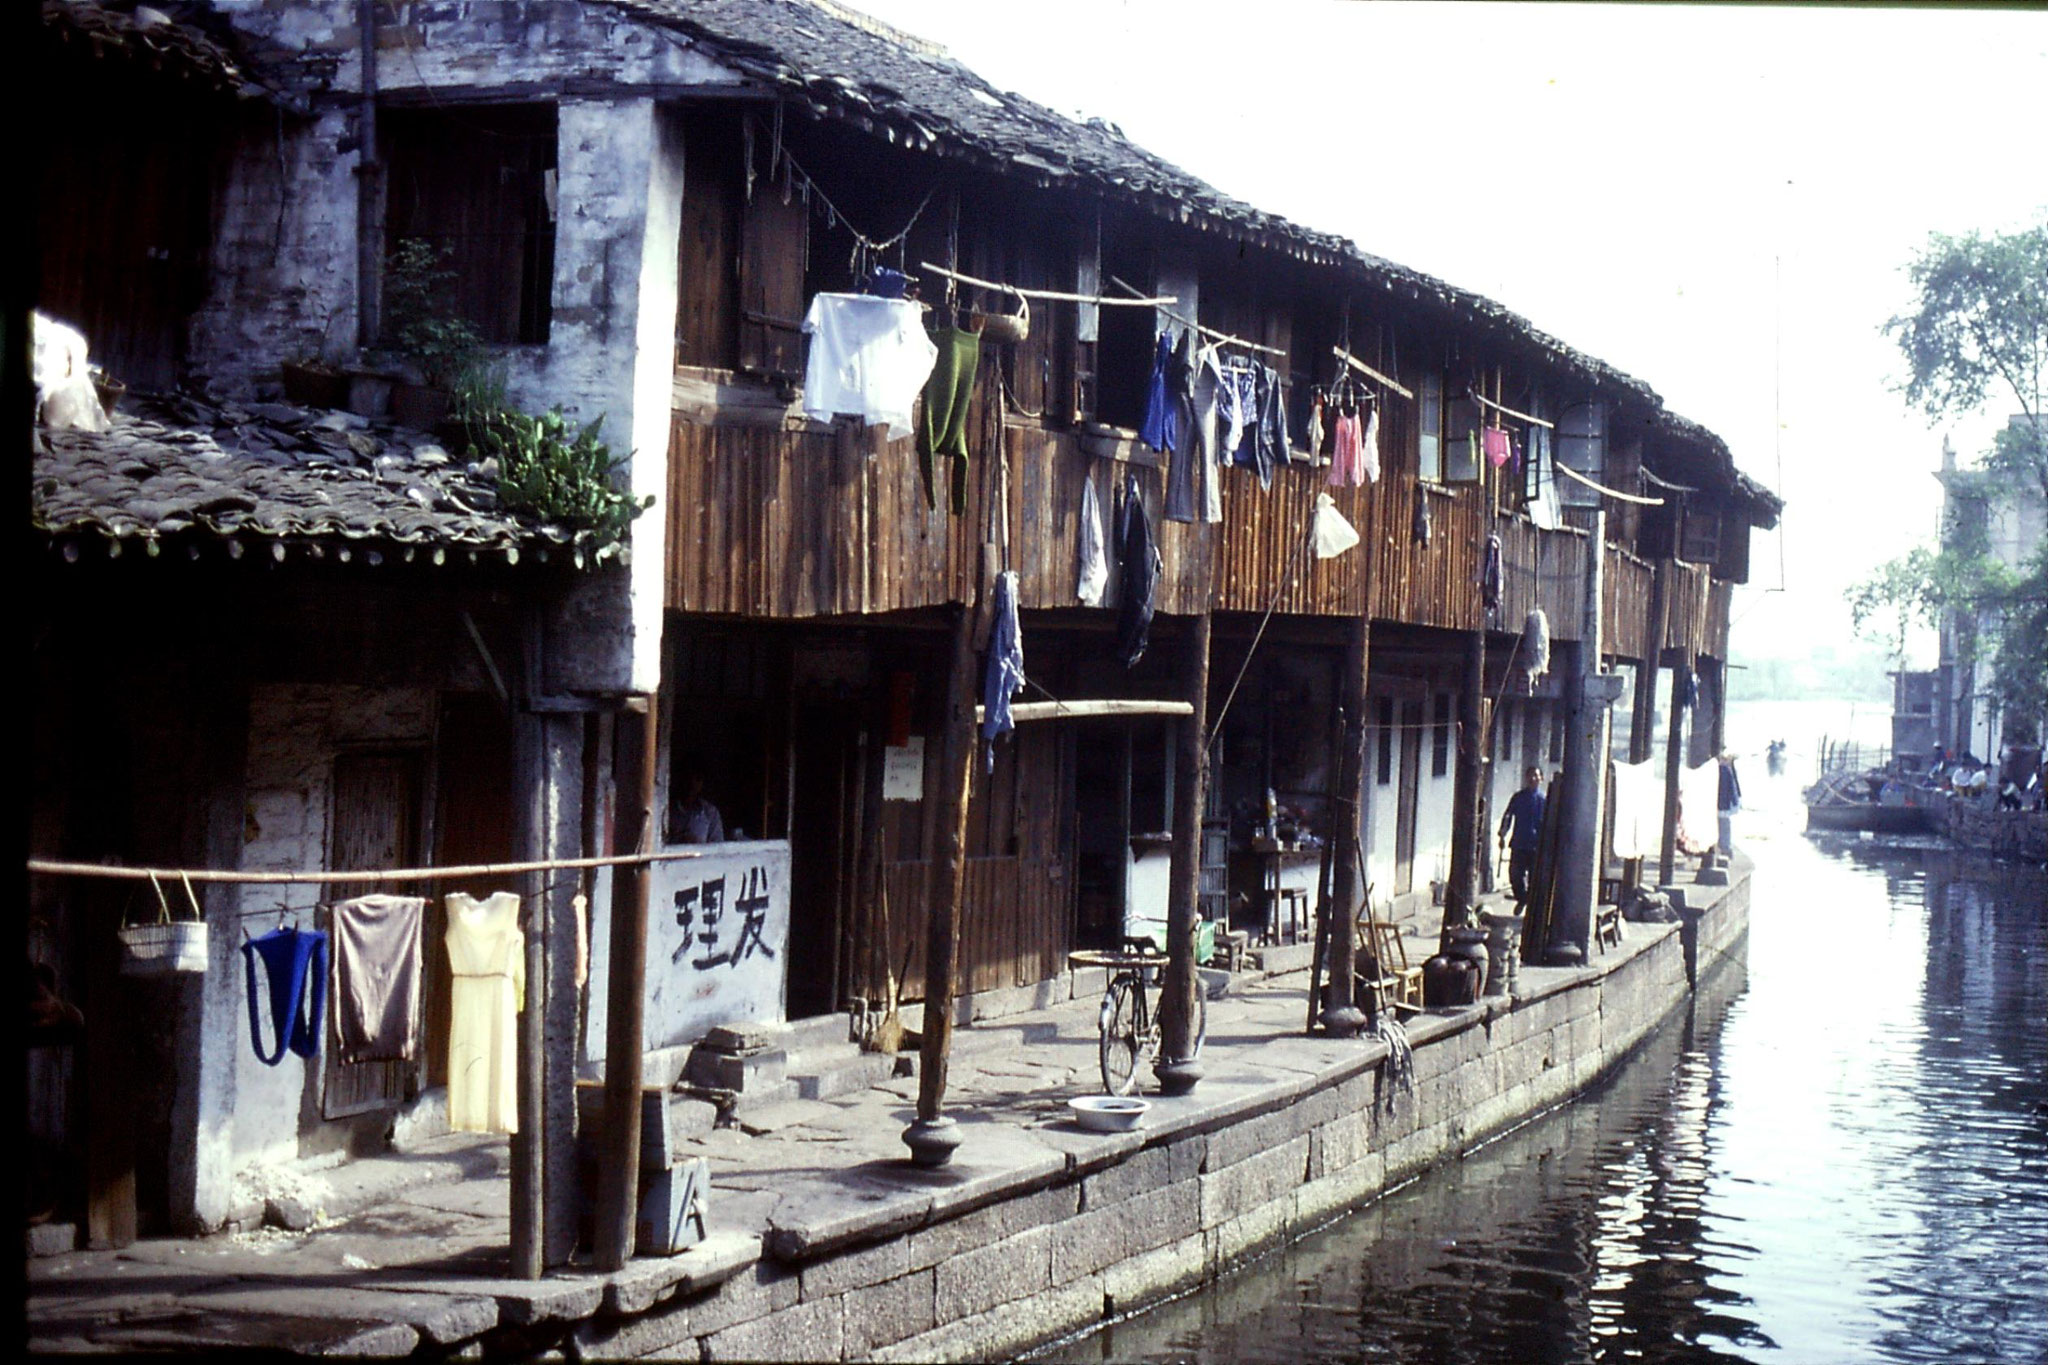 3/6/1989: 1: houses next to canal